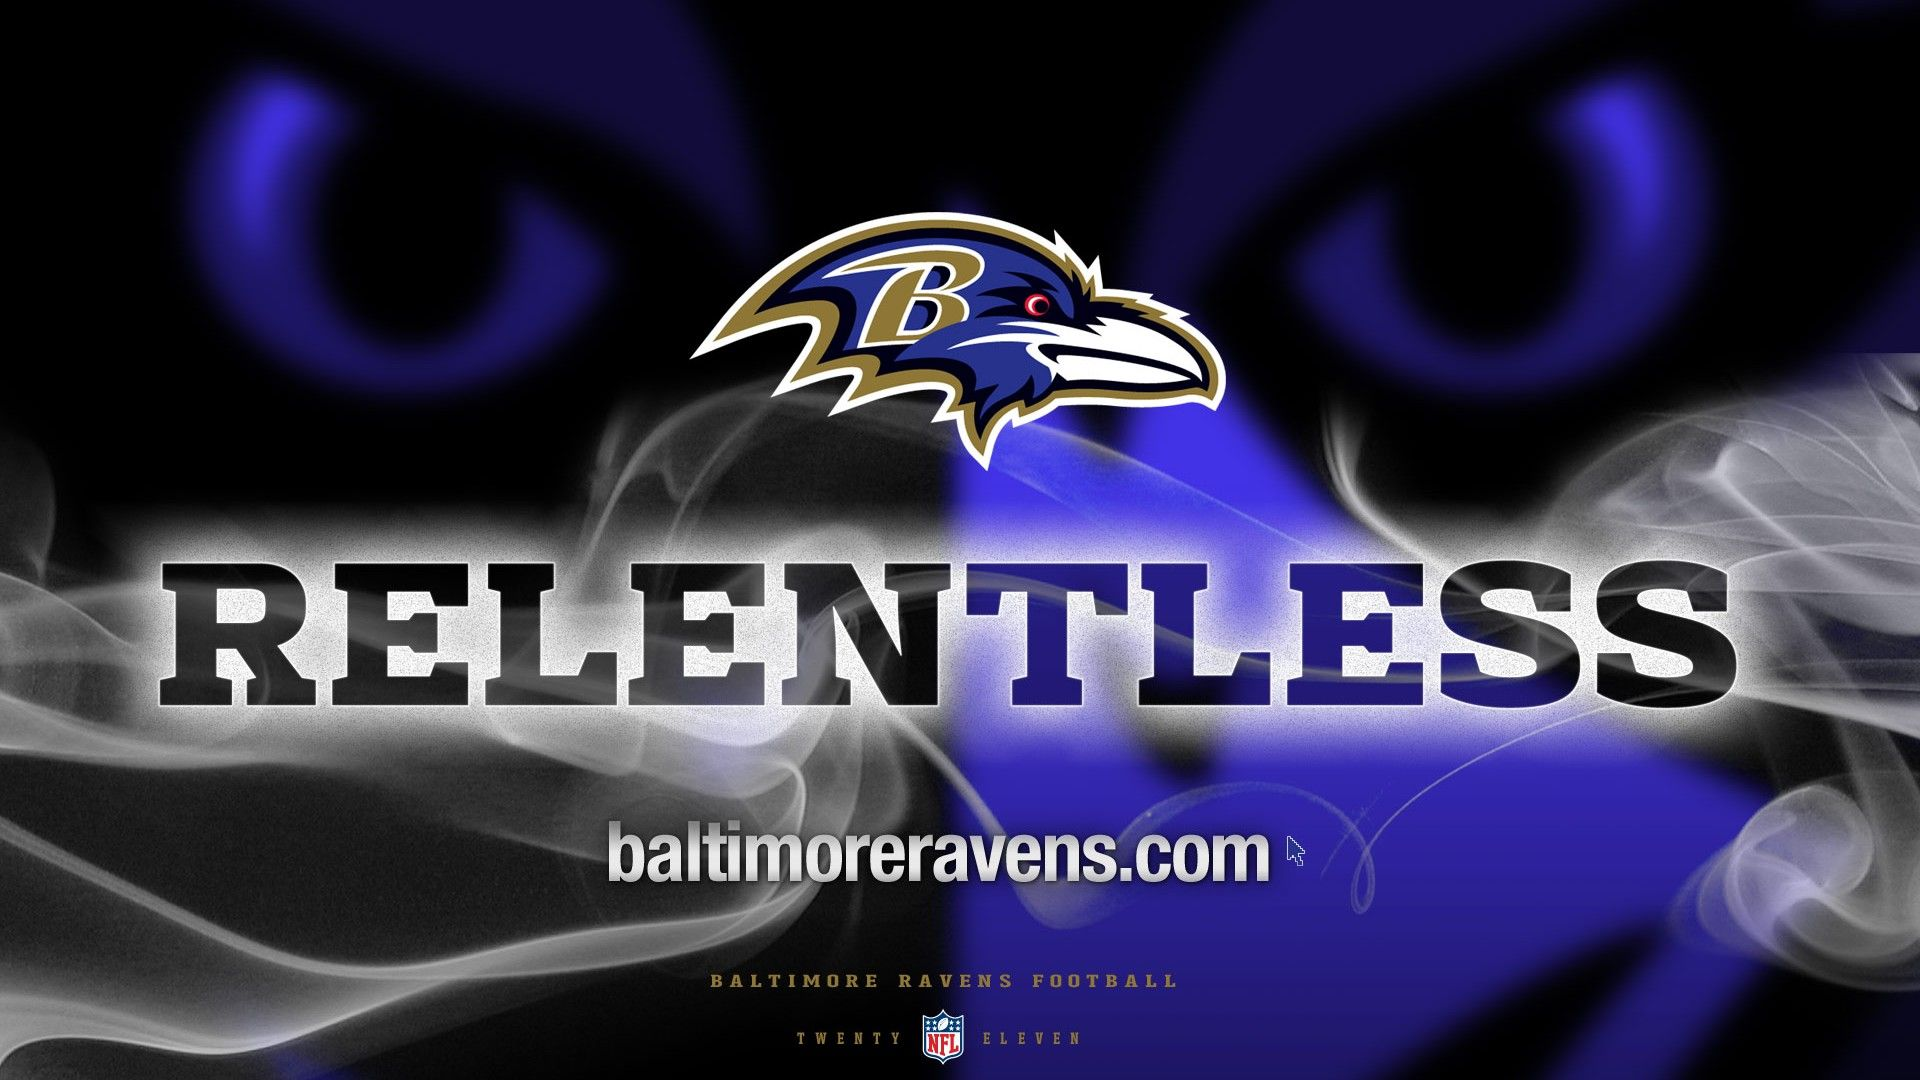 HD Desktop Wallpaper Baltimore Ravens Wallpapers Baltimore 1920x1080